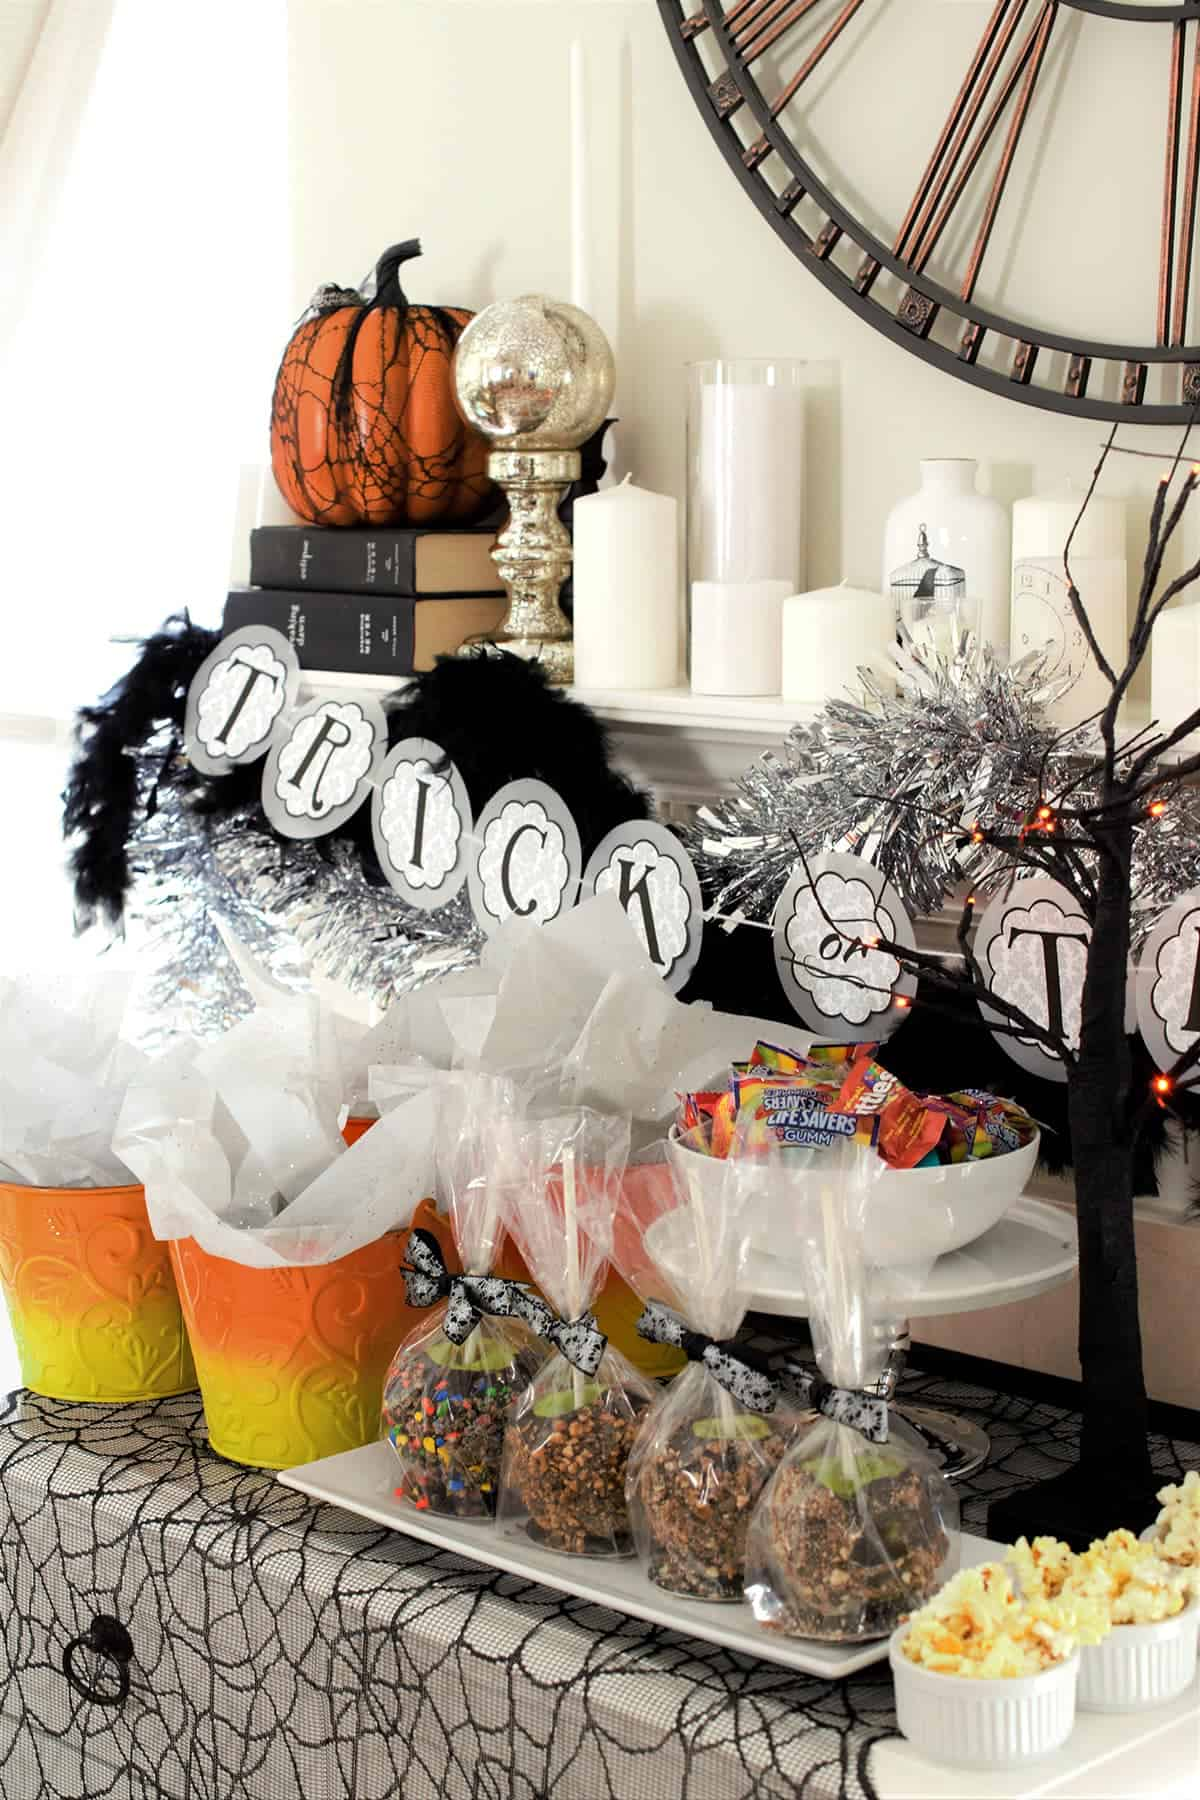 Halloween themed mantle with various decorations and treat table for entertaining guests.